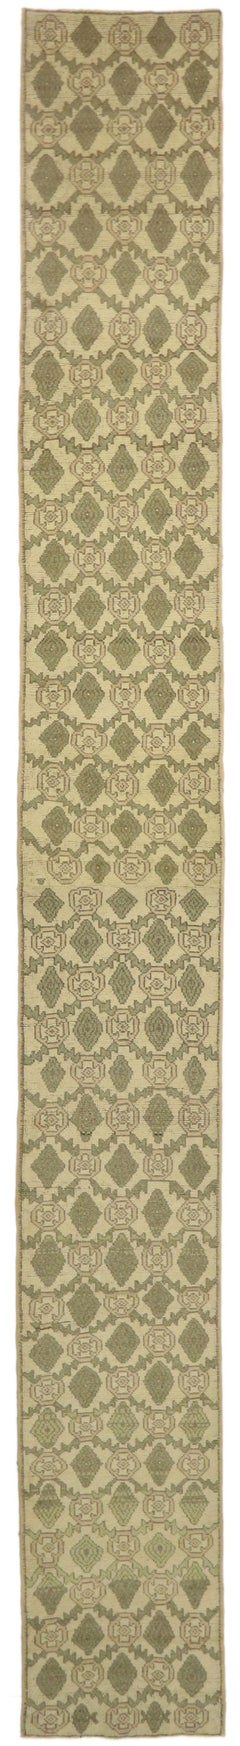 Vintage Turkish Oushak Long Hallway Runner with Queen Anne Late Victorian Style